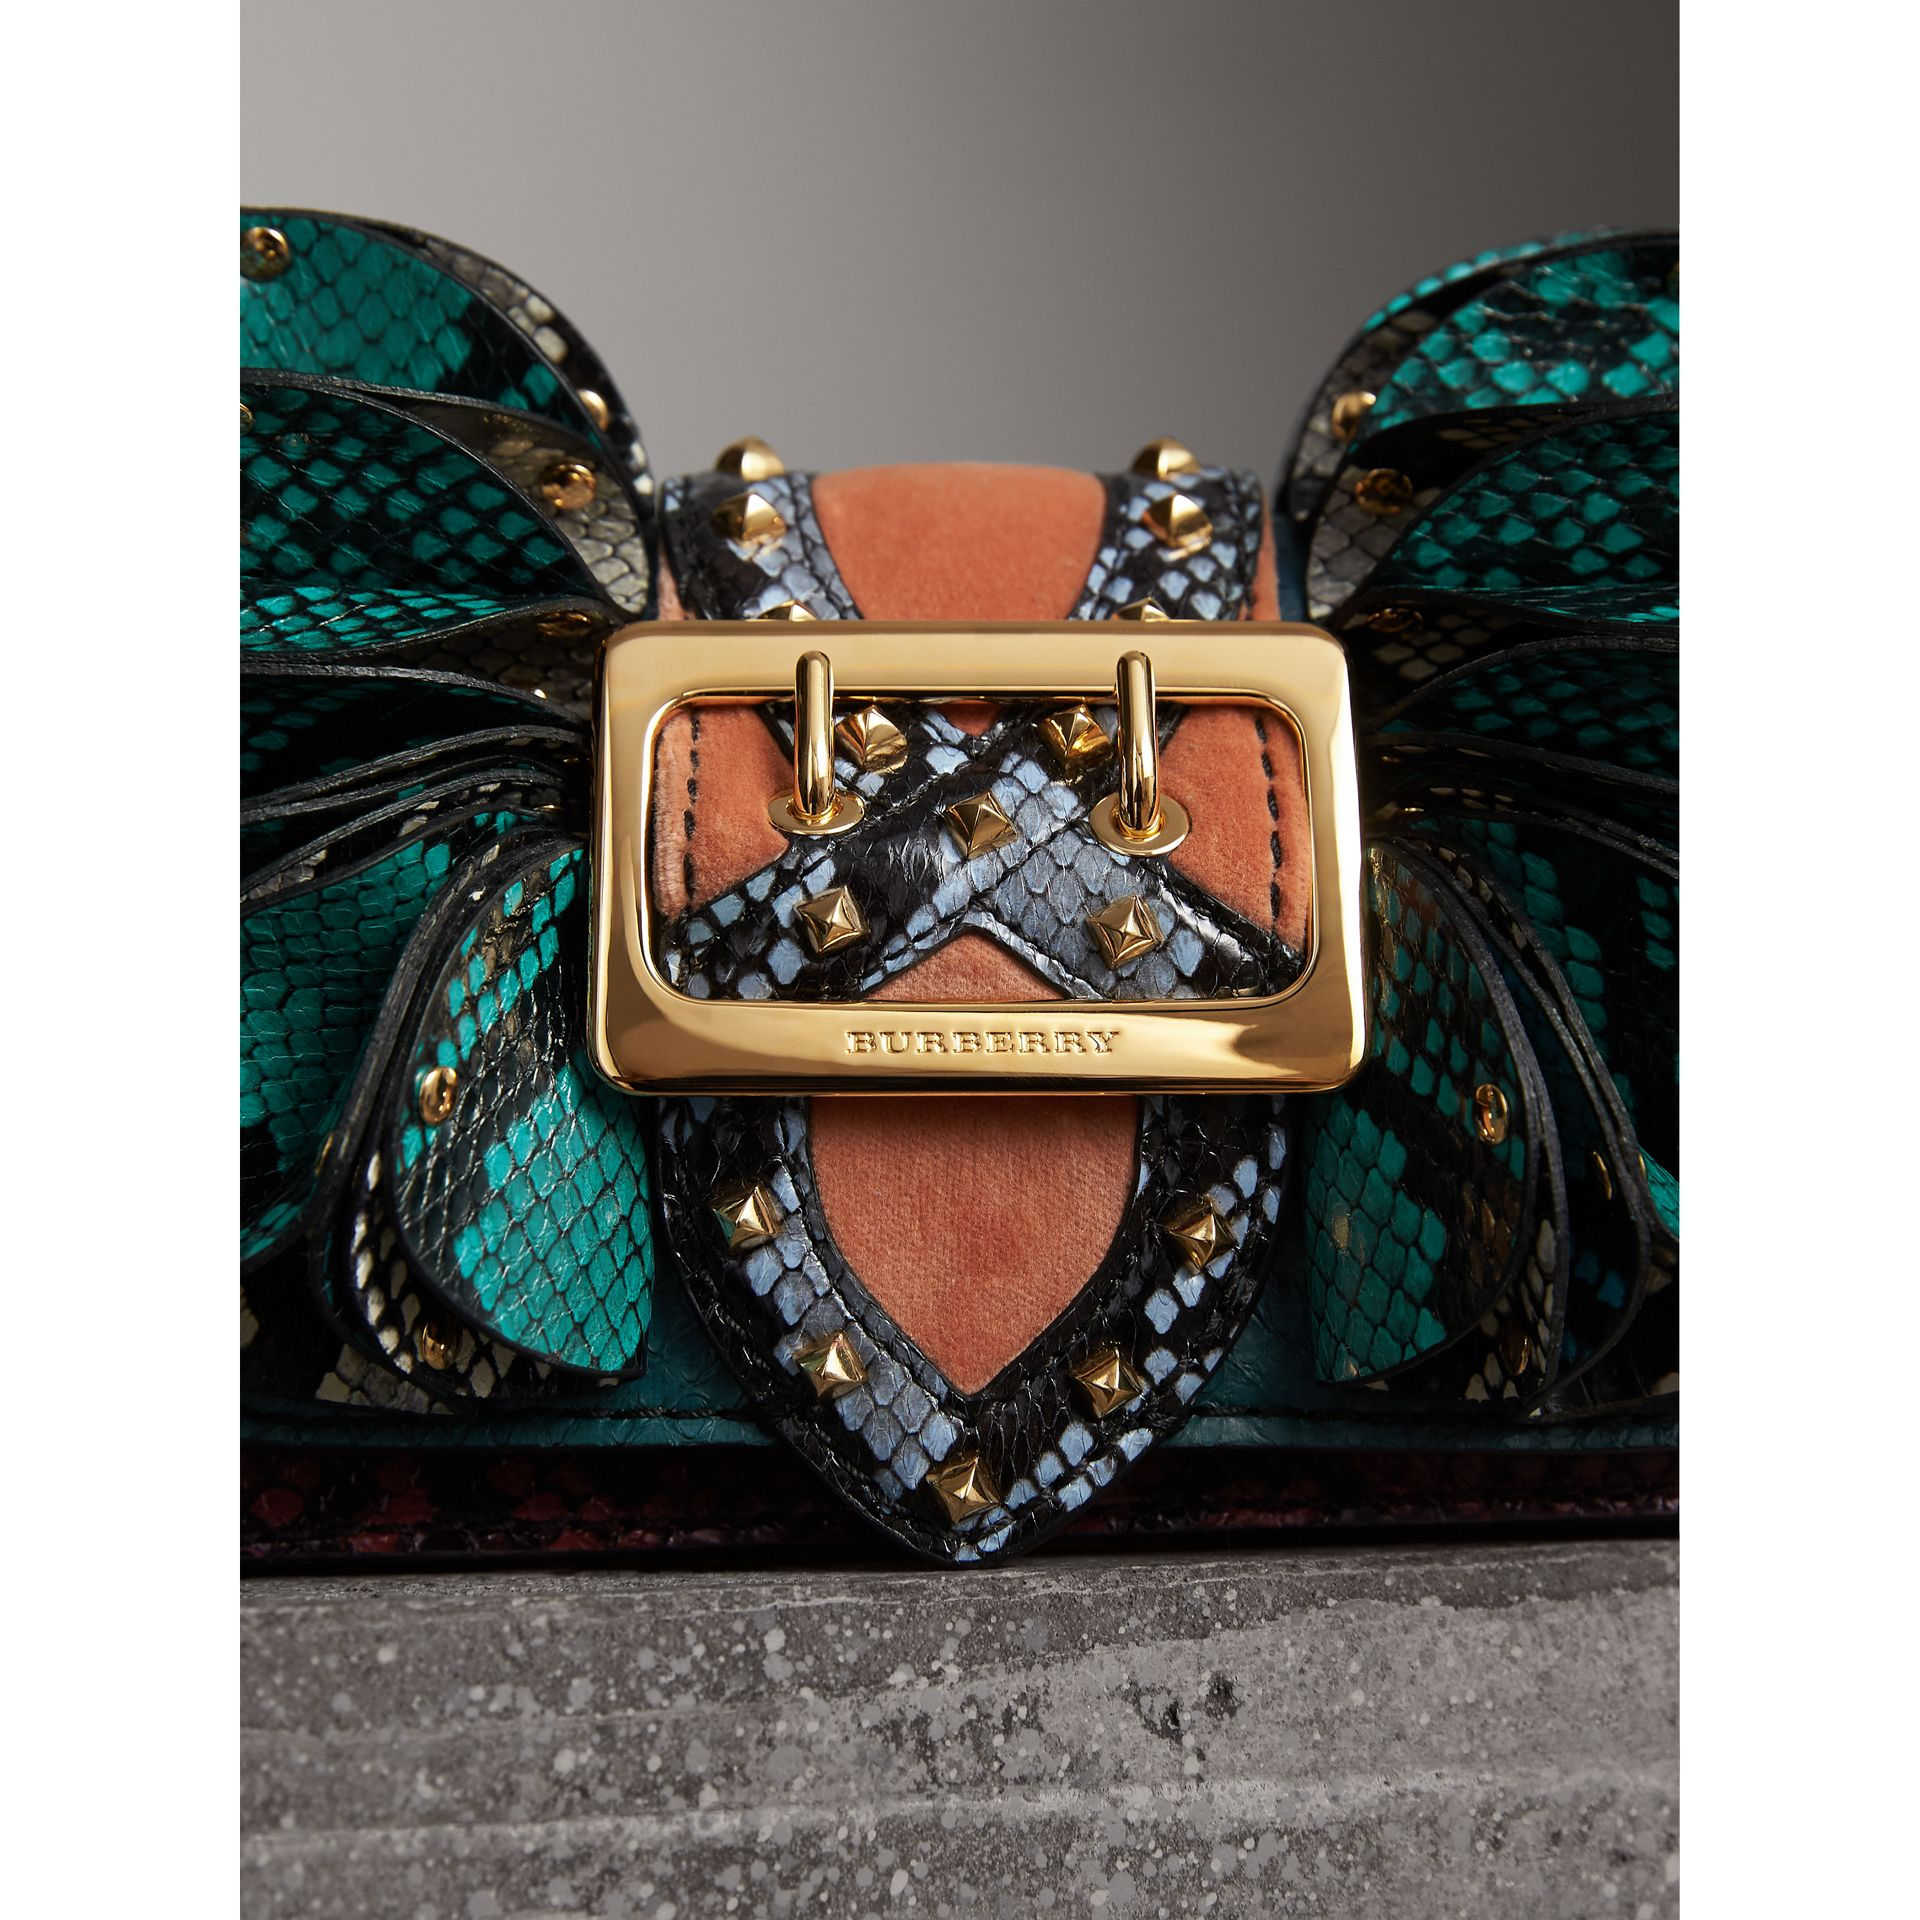 Sac The Ruffle Buckle en peau de serpent et velours (Canard) - Femme | Burberry - photo de la galerie 2